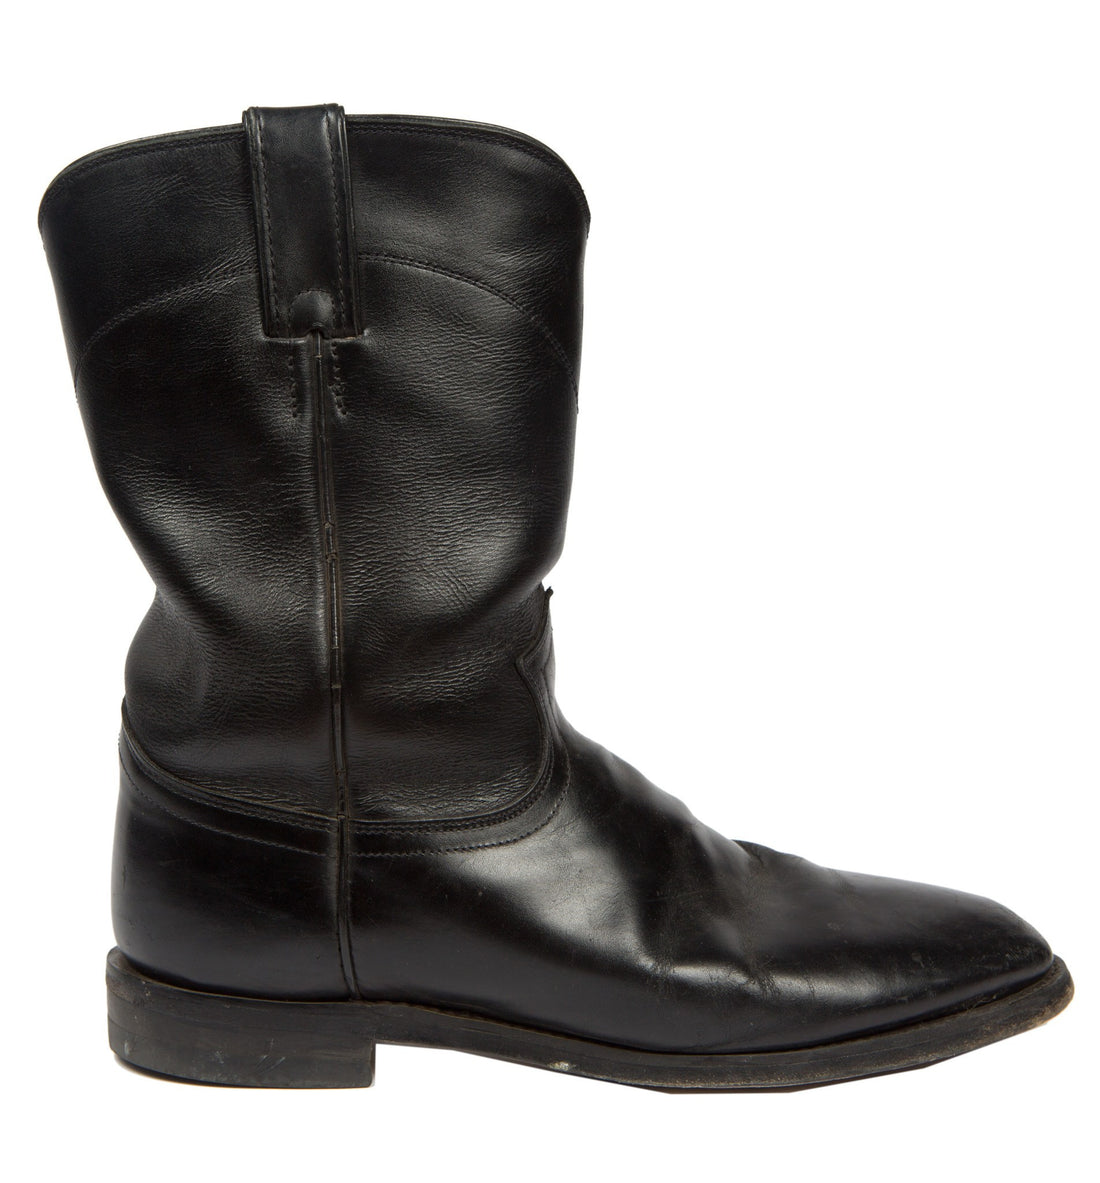 Vintage Black Leather Justin Boots, Mens Size 10 - Vintage: Men's: Shoes - Iron and Resin